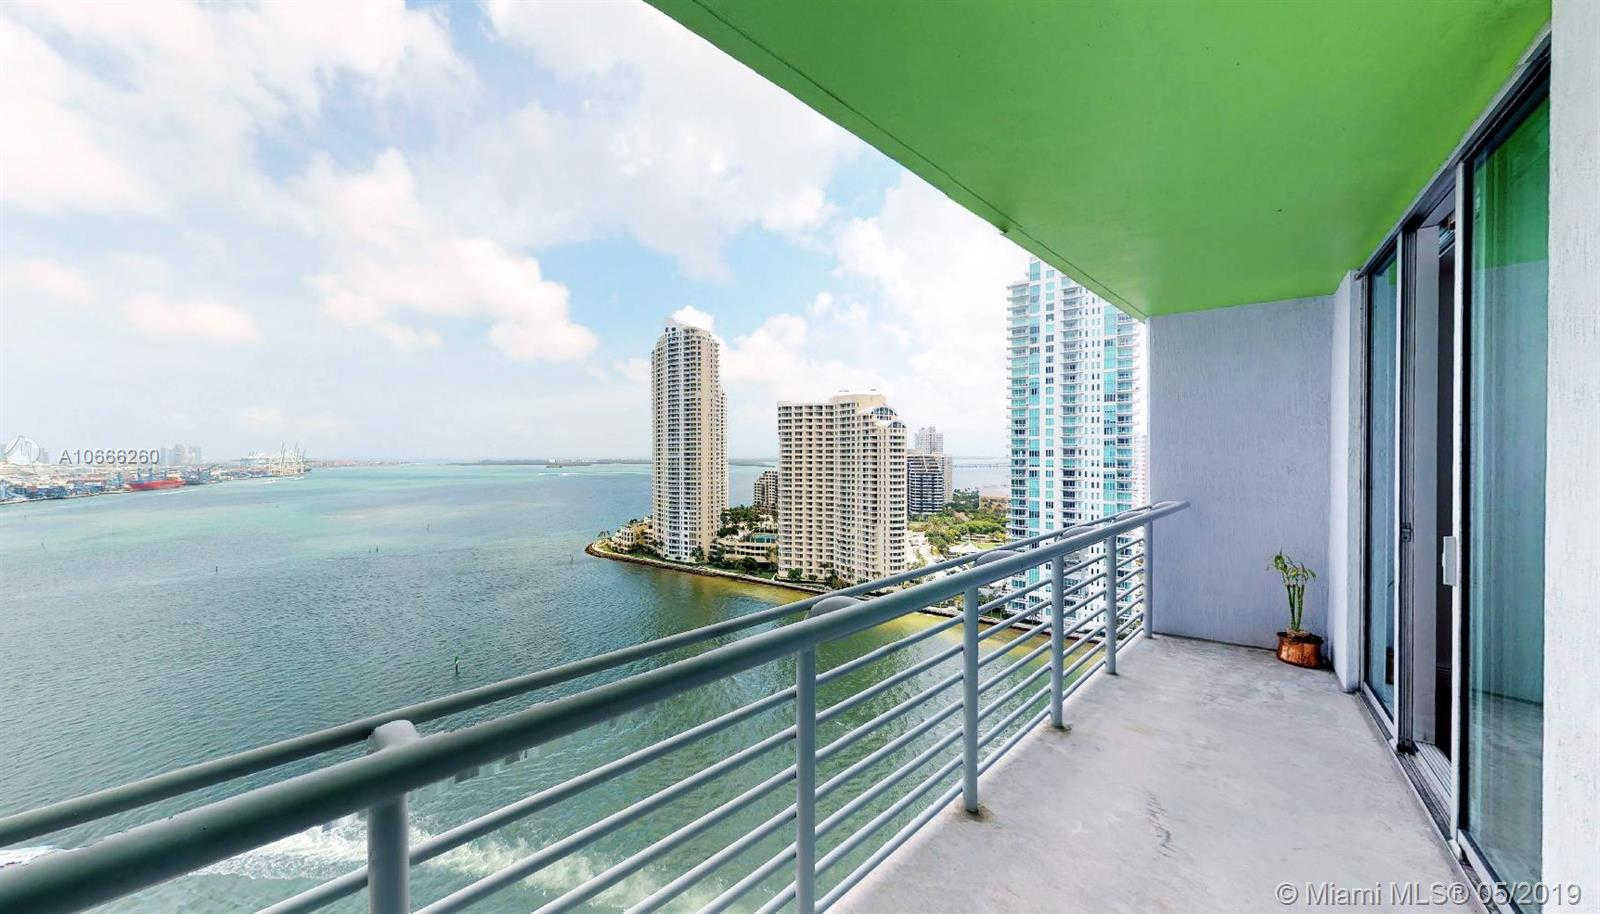 325 S Biscayne Blvd #2326, Miami, FL 33131 now has a new price of $539,000!